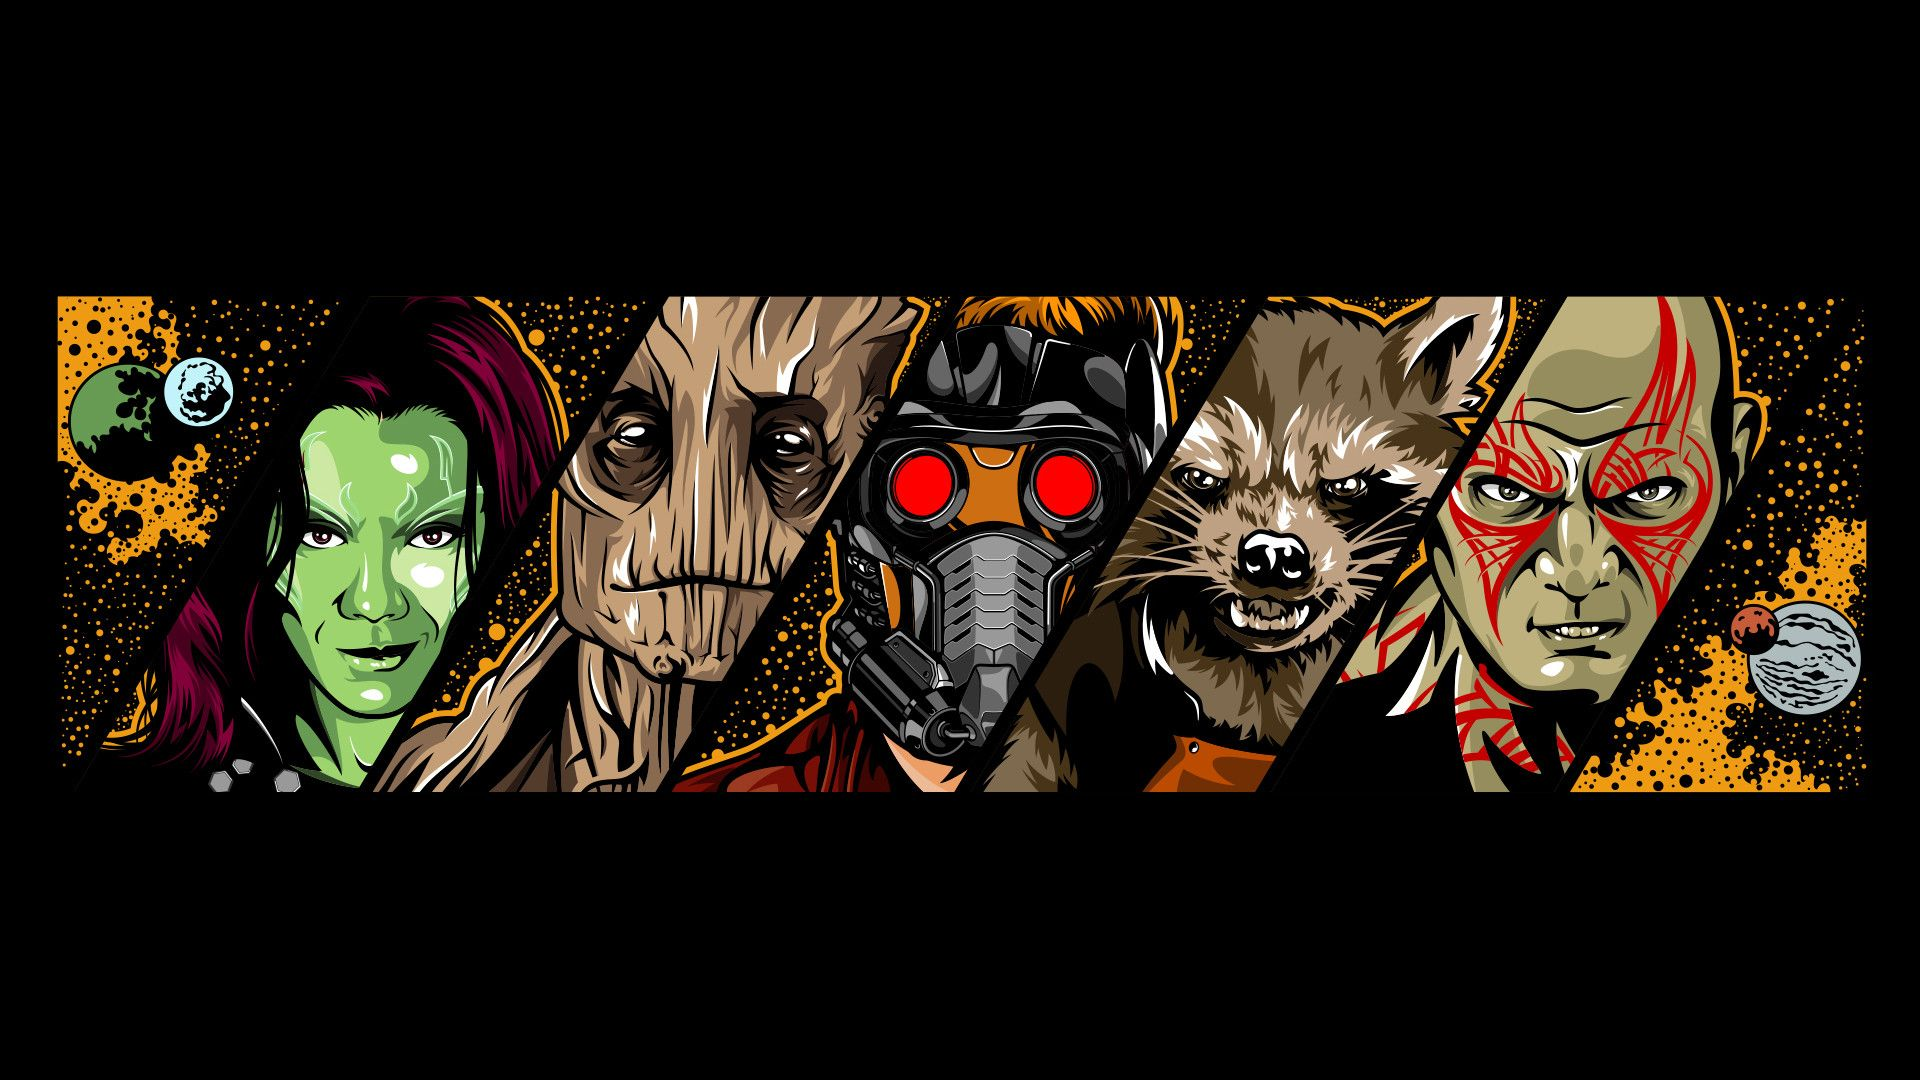 Guardians Of The Galaxy 1920x1080 R Wallpapers Galaxy Poster Guardians Of The Galaxy Galaxy Art